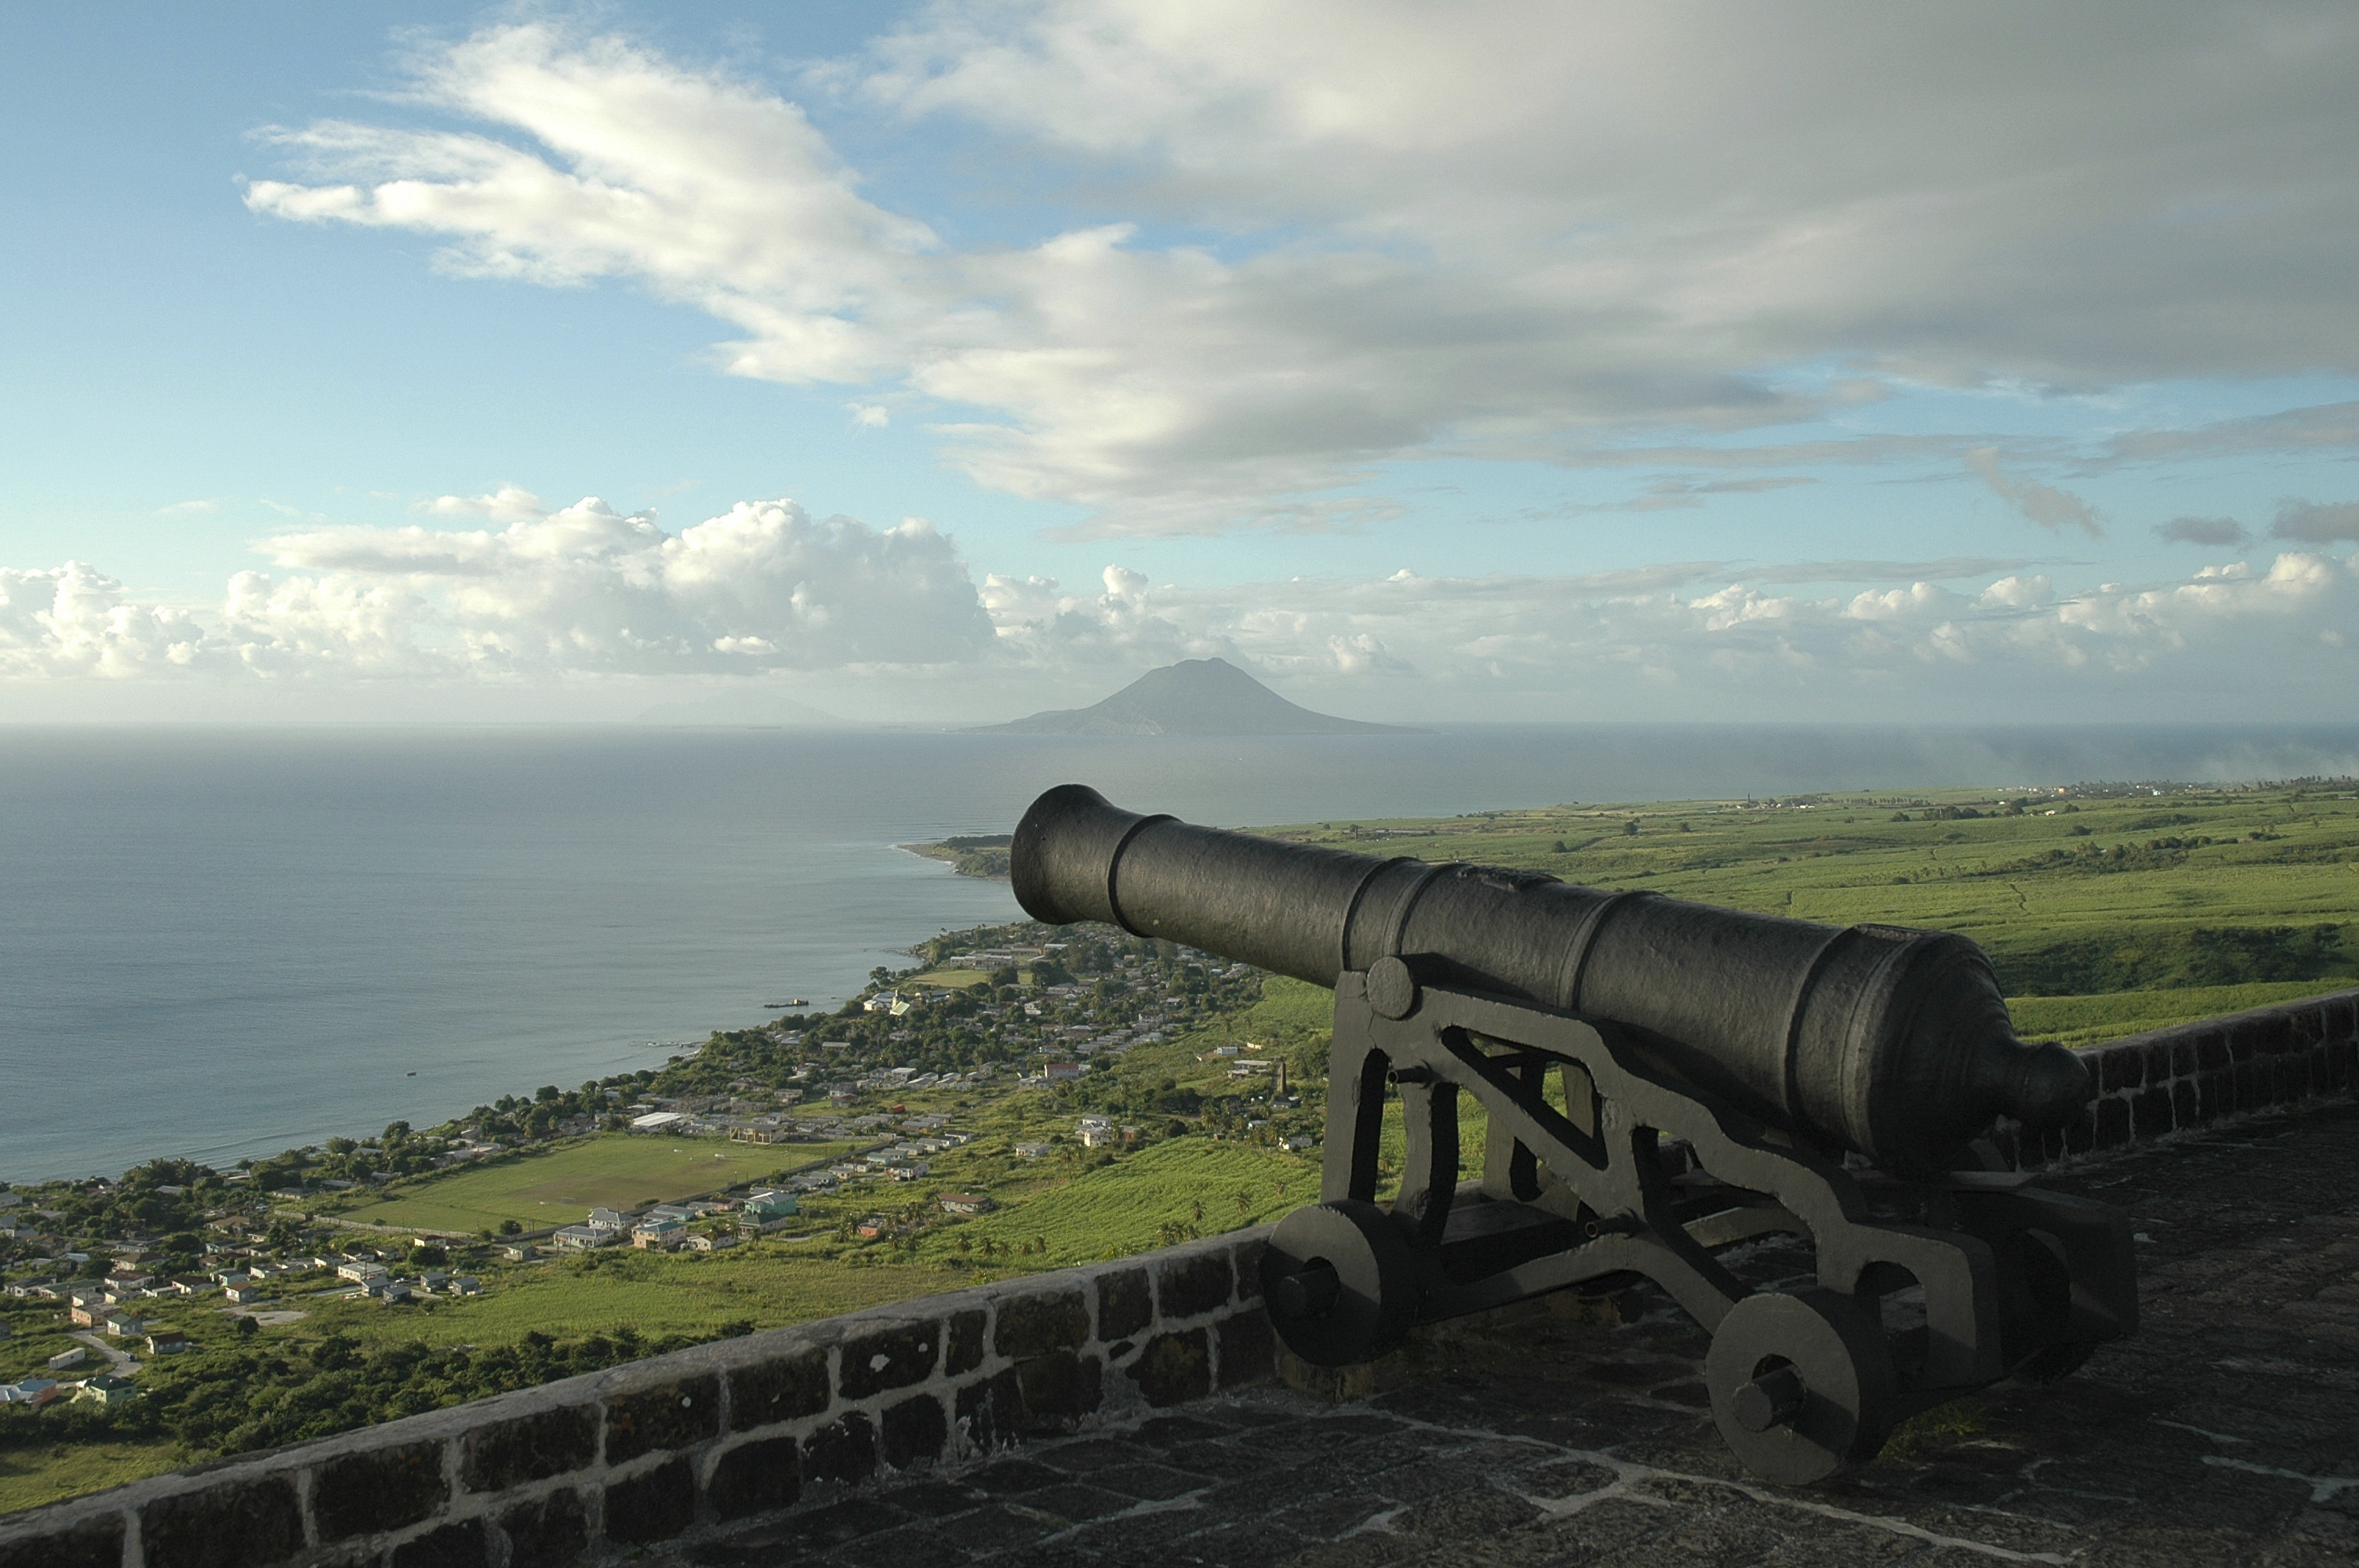 Cannon on Brimstone Hill, St Kitts